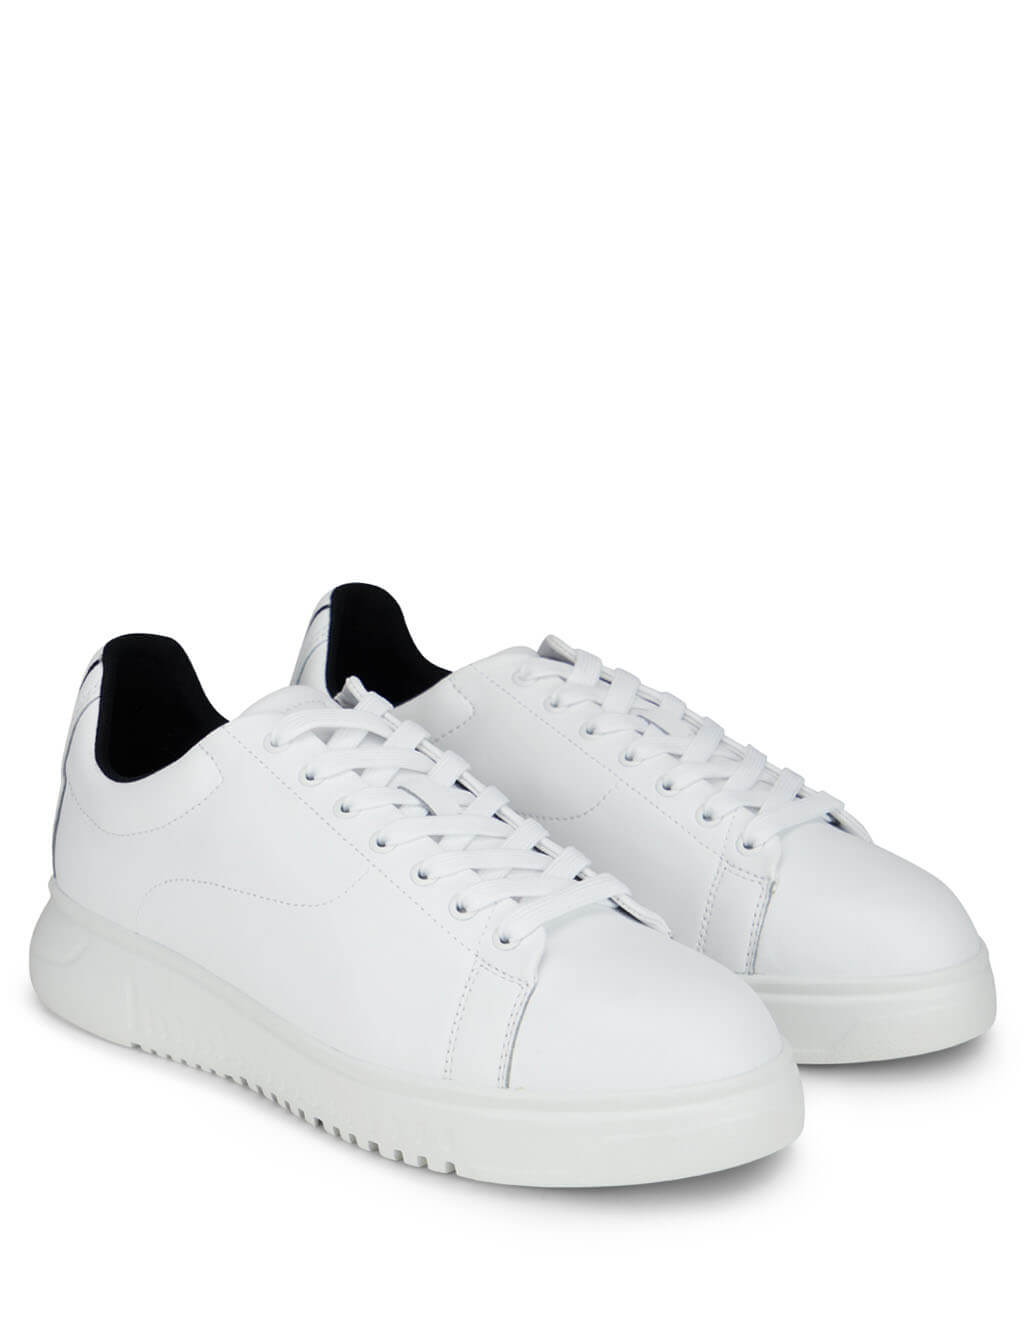 Men's Emporio Armani Heel Print Low-Top Sneakers in White - X4X312XM4901A222